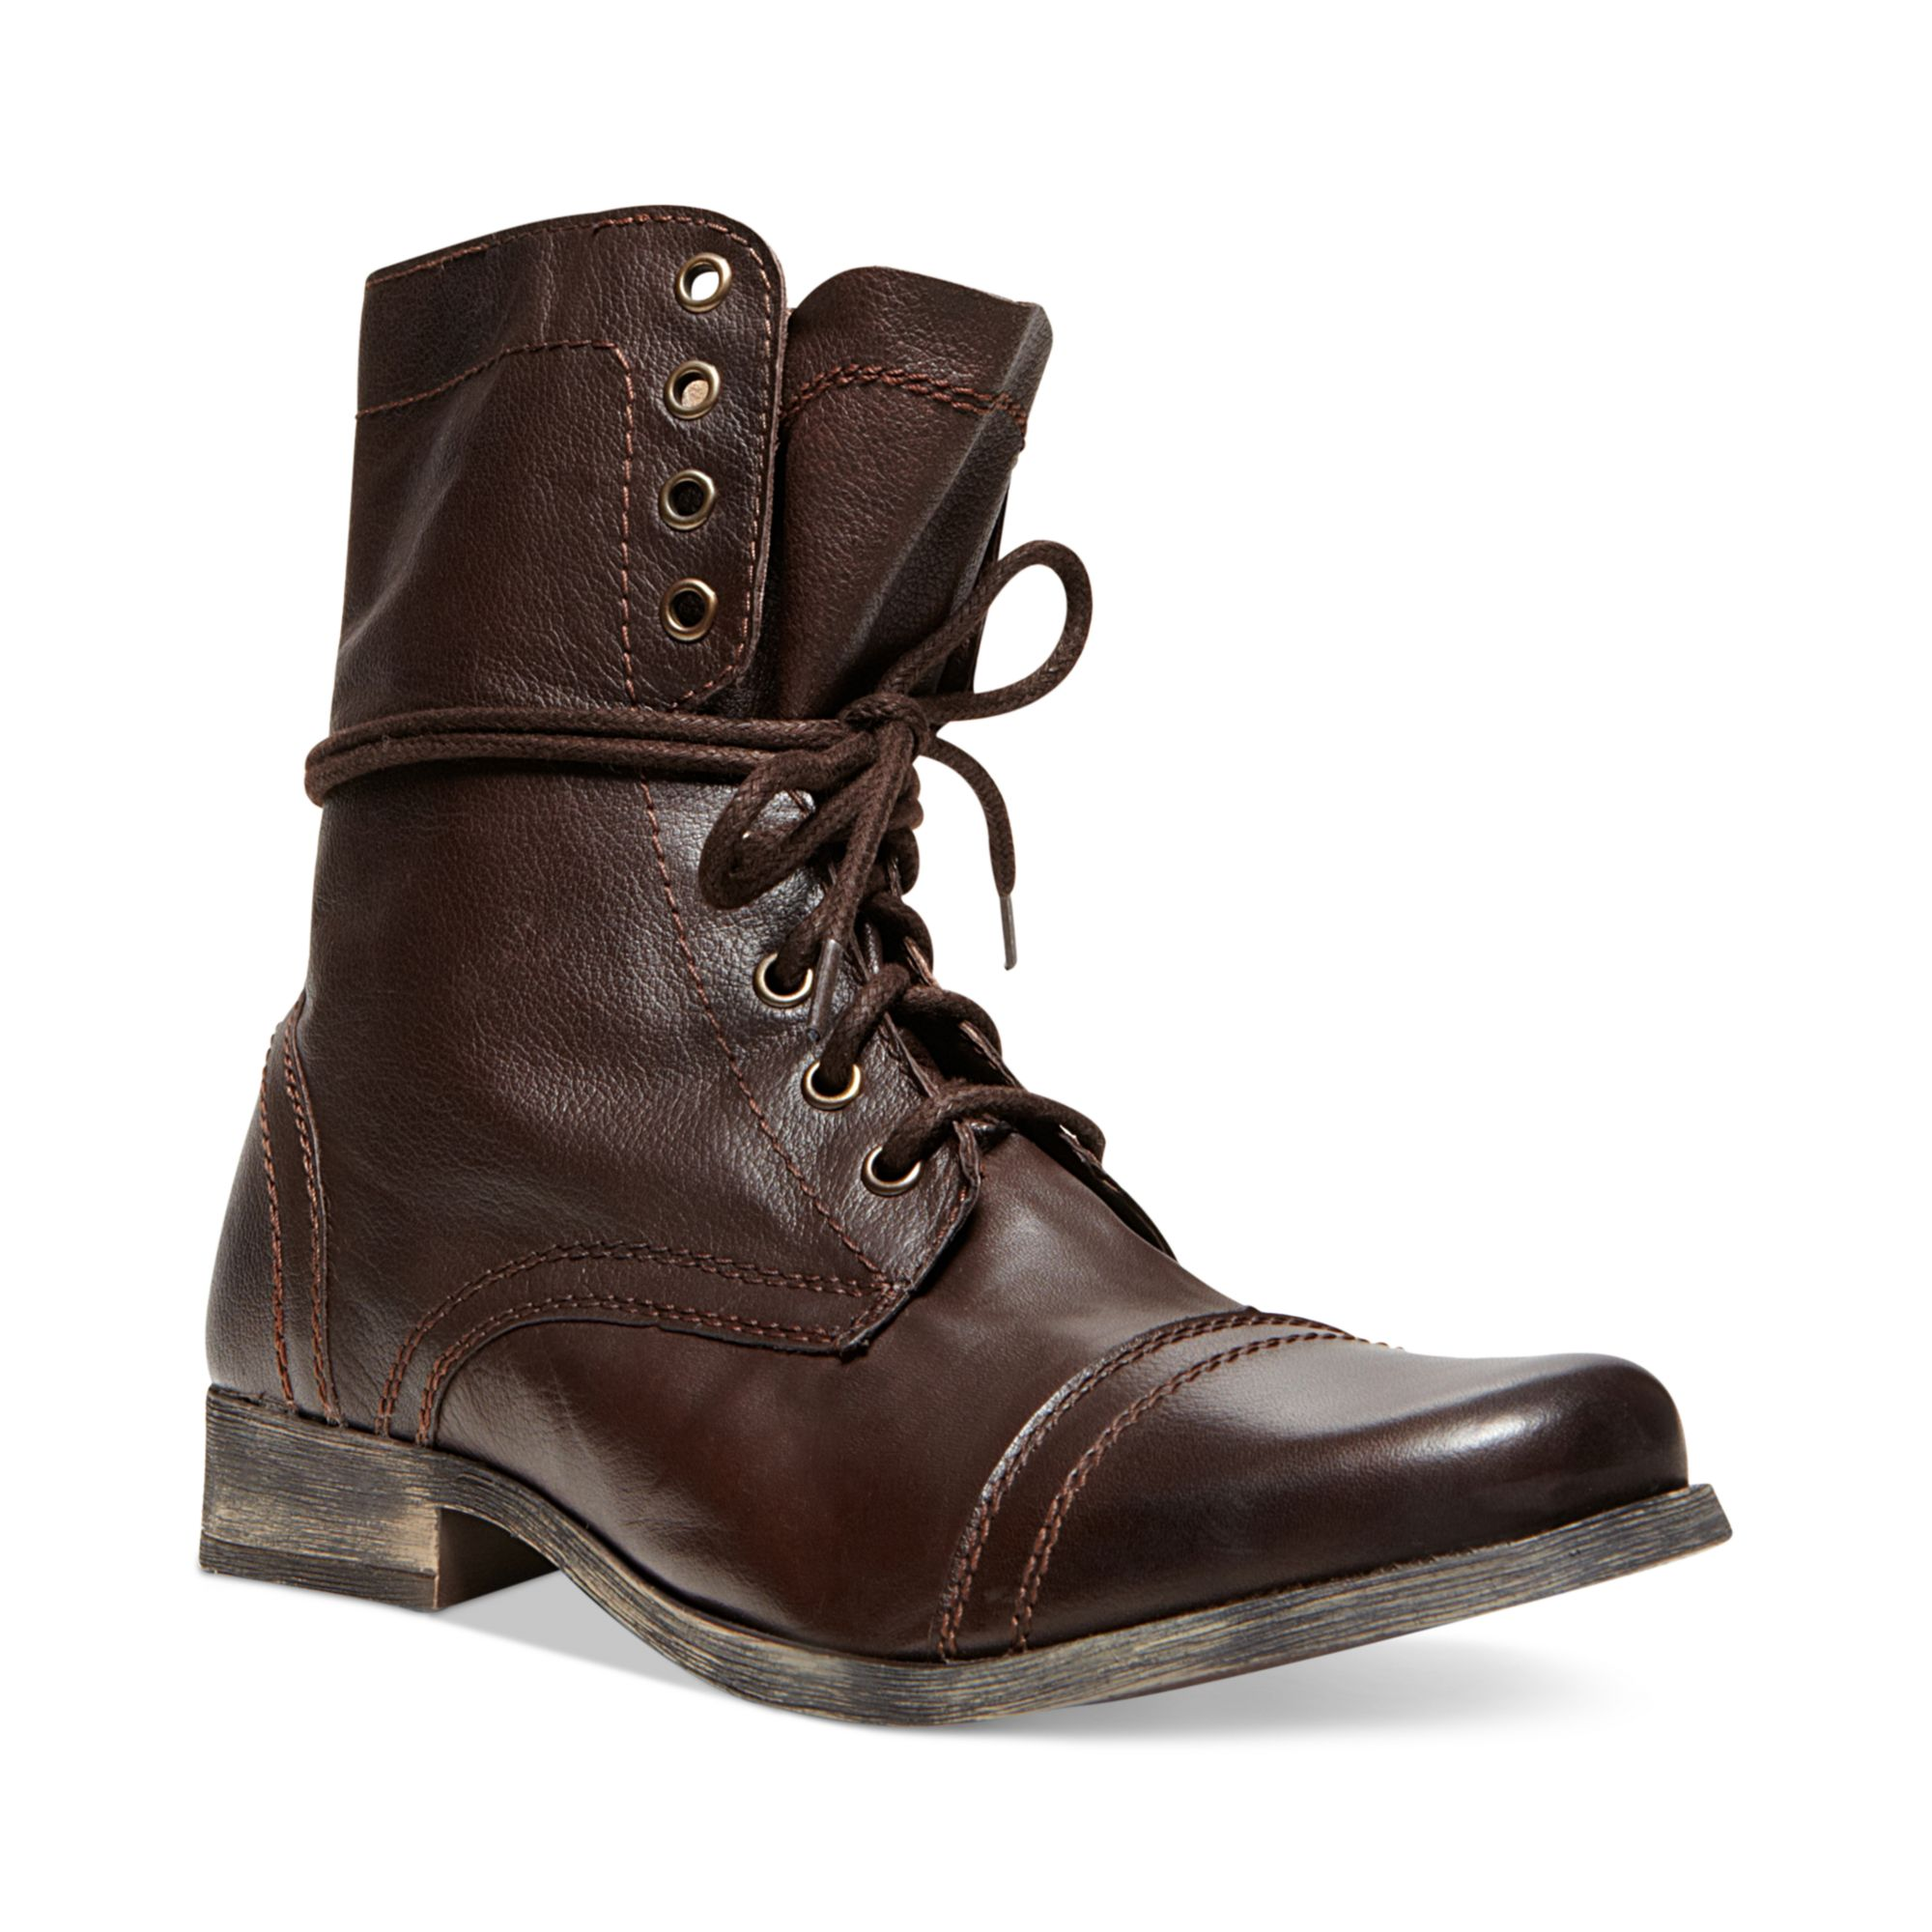 steve madden troopah2 cap toe boots in brown for